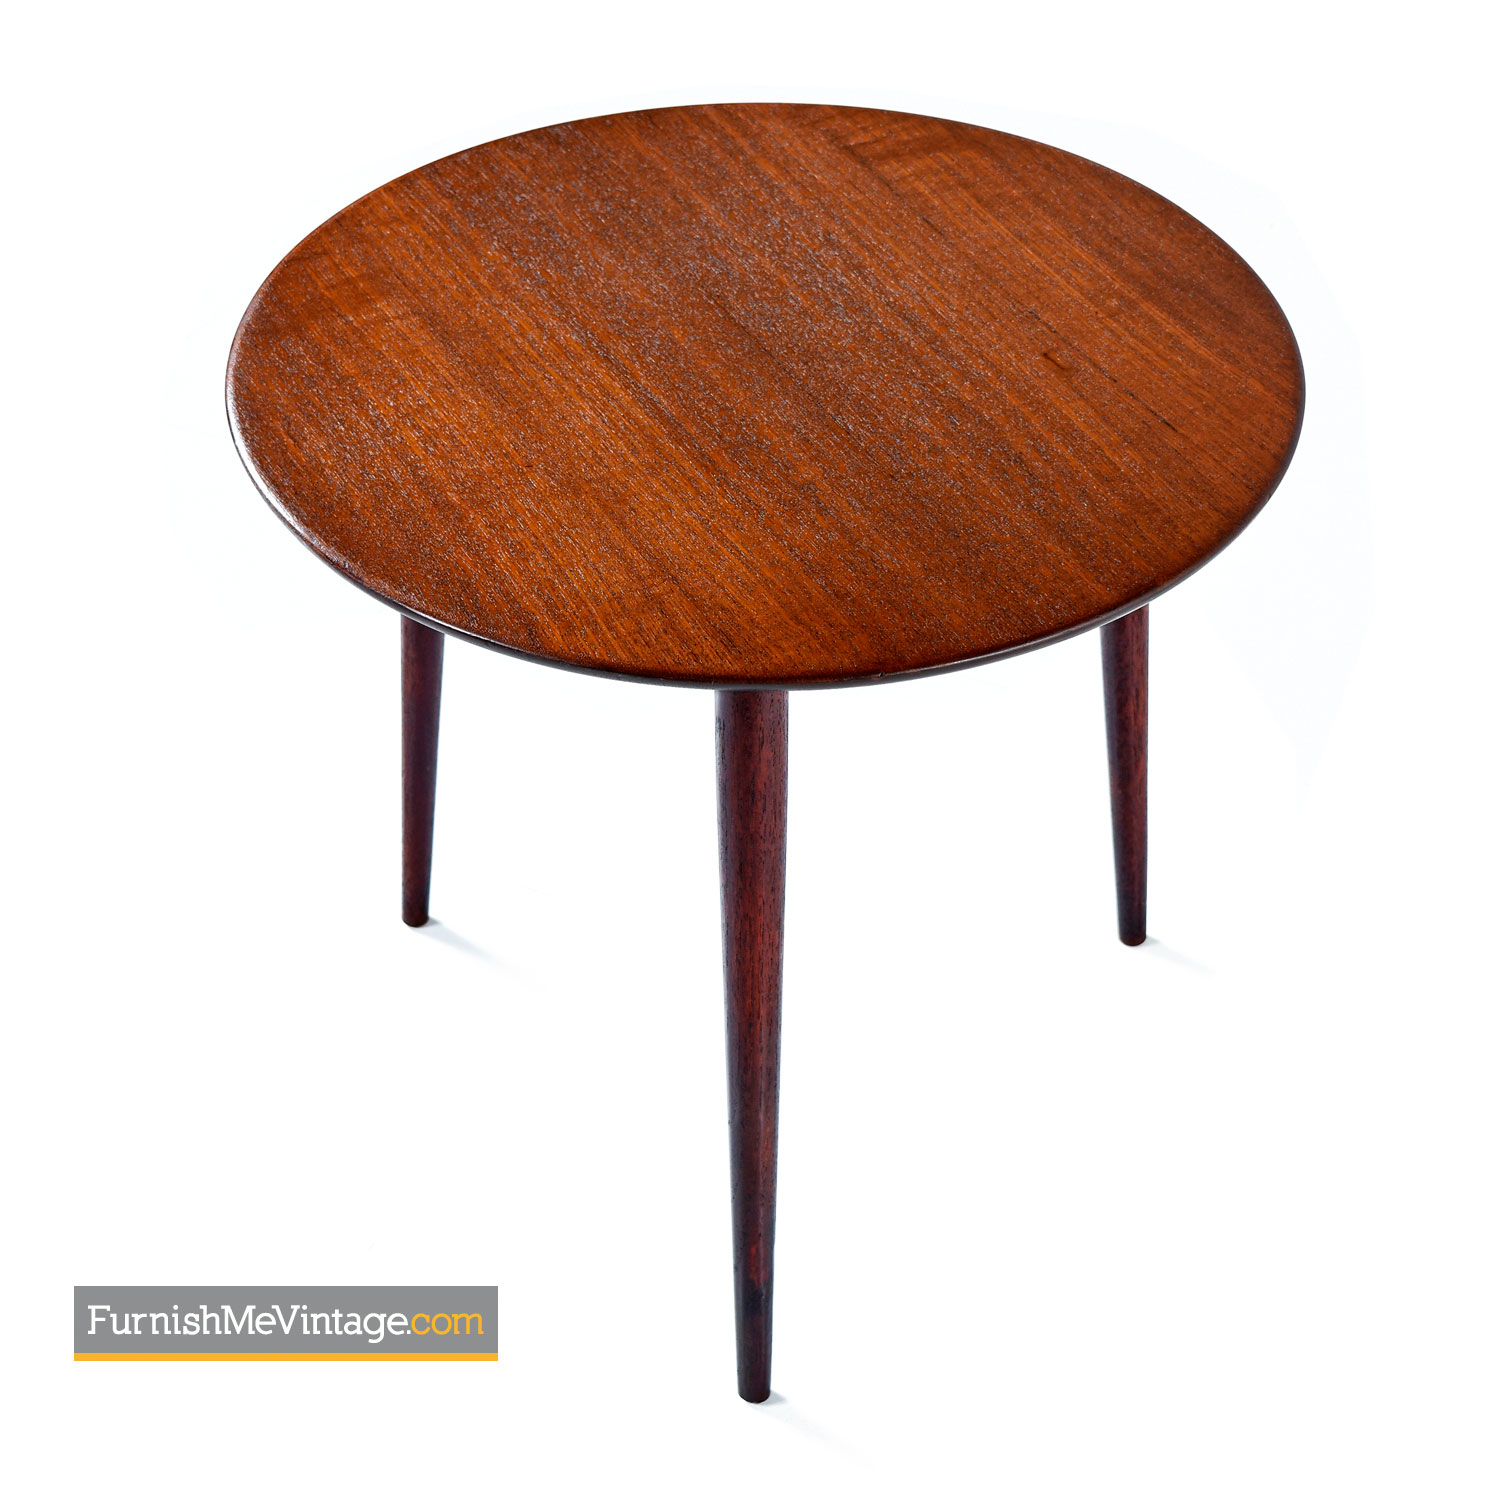 Image of: Circular Mid Century Modern Danish Teak End Table Furnish Me Vintage